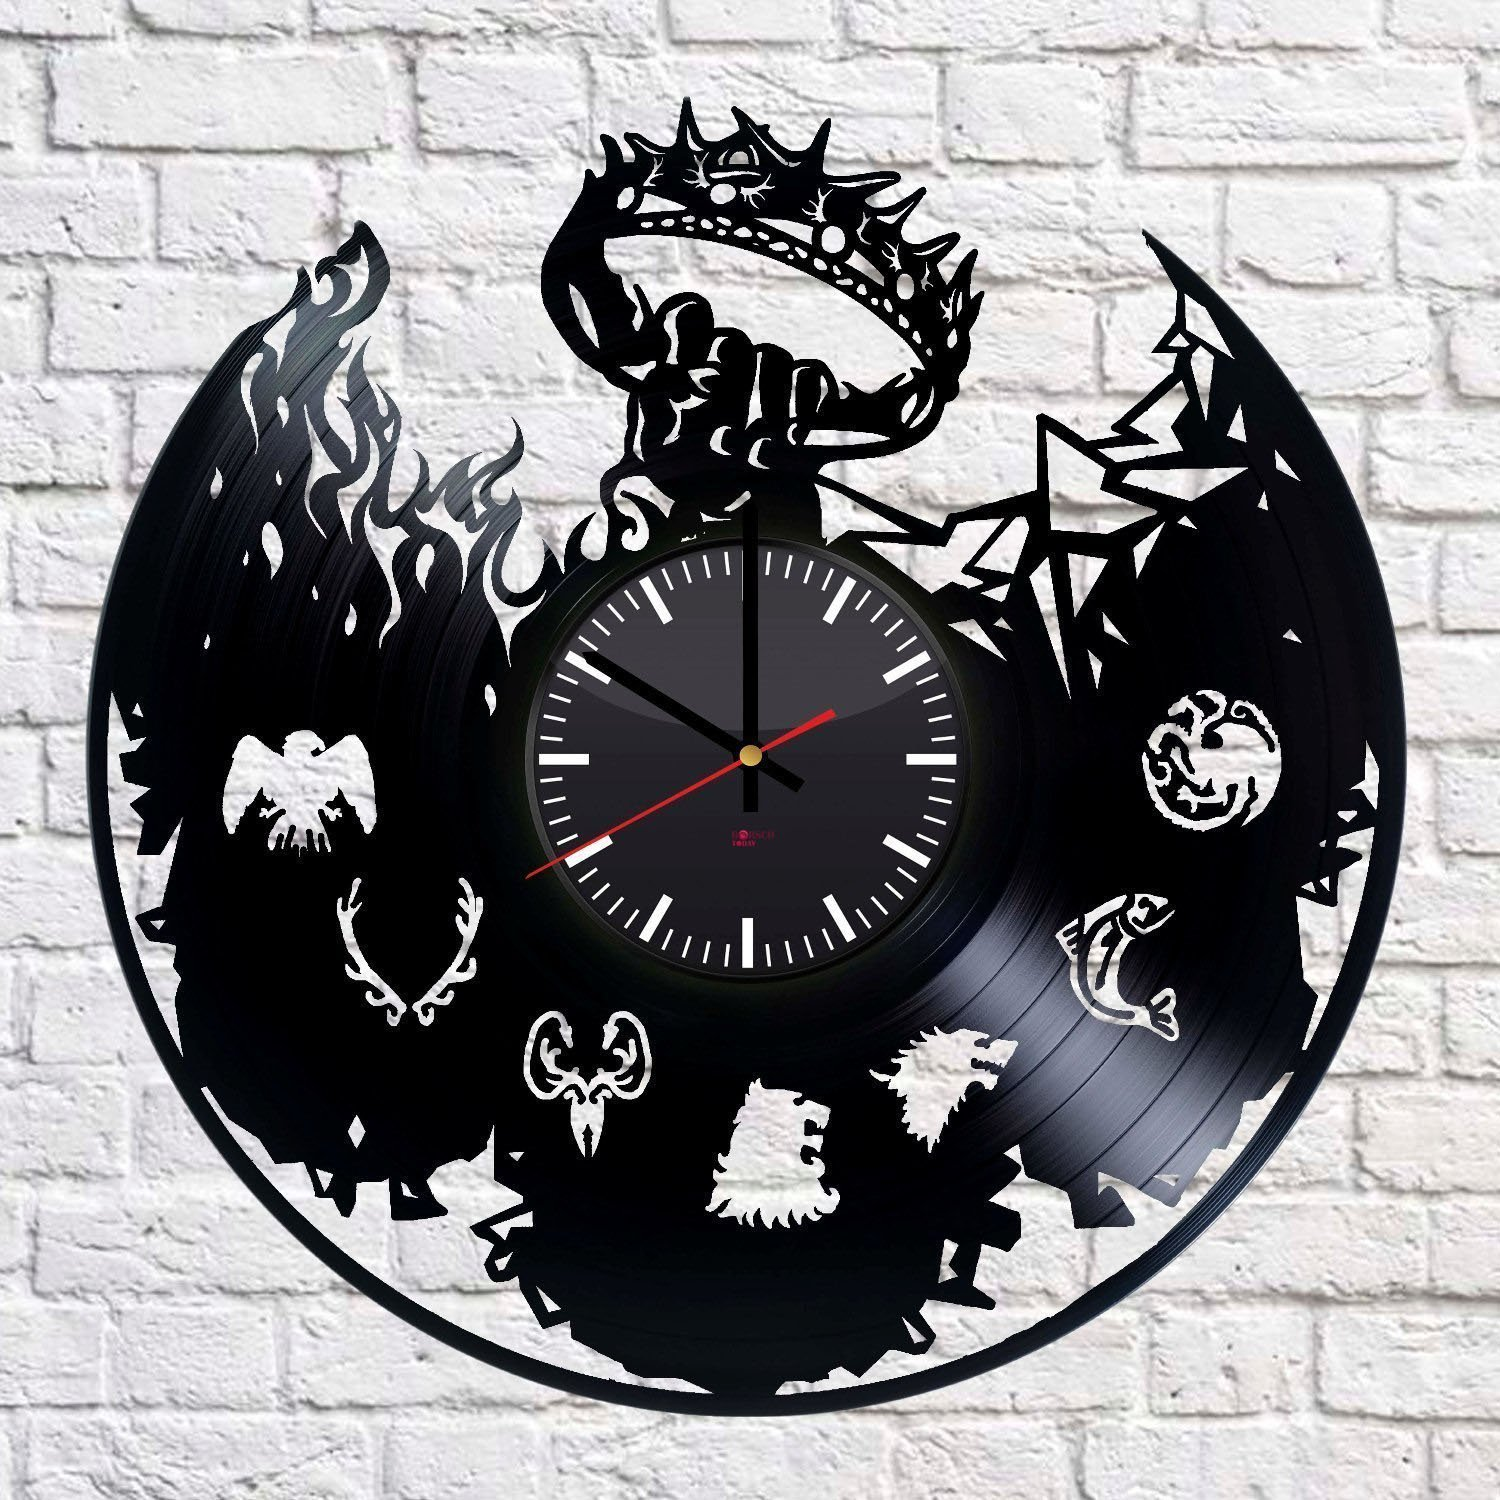 Game of Thrones Fantasy Handmade Vinyl Record Wall Clock - Get unique home room wall decor - Gift ideas for parents, teens – Epic Movie Unique Modern Art